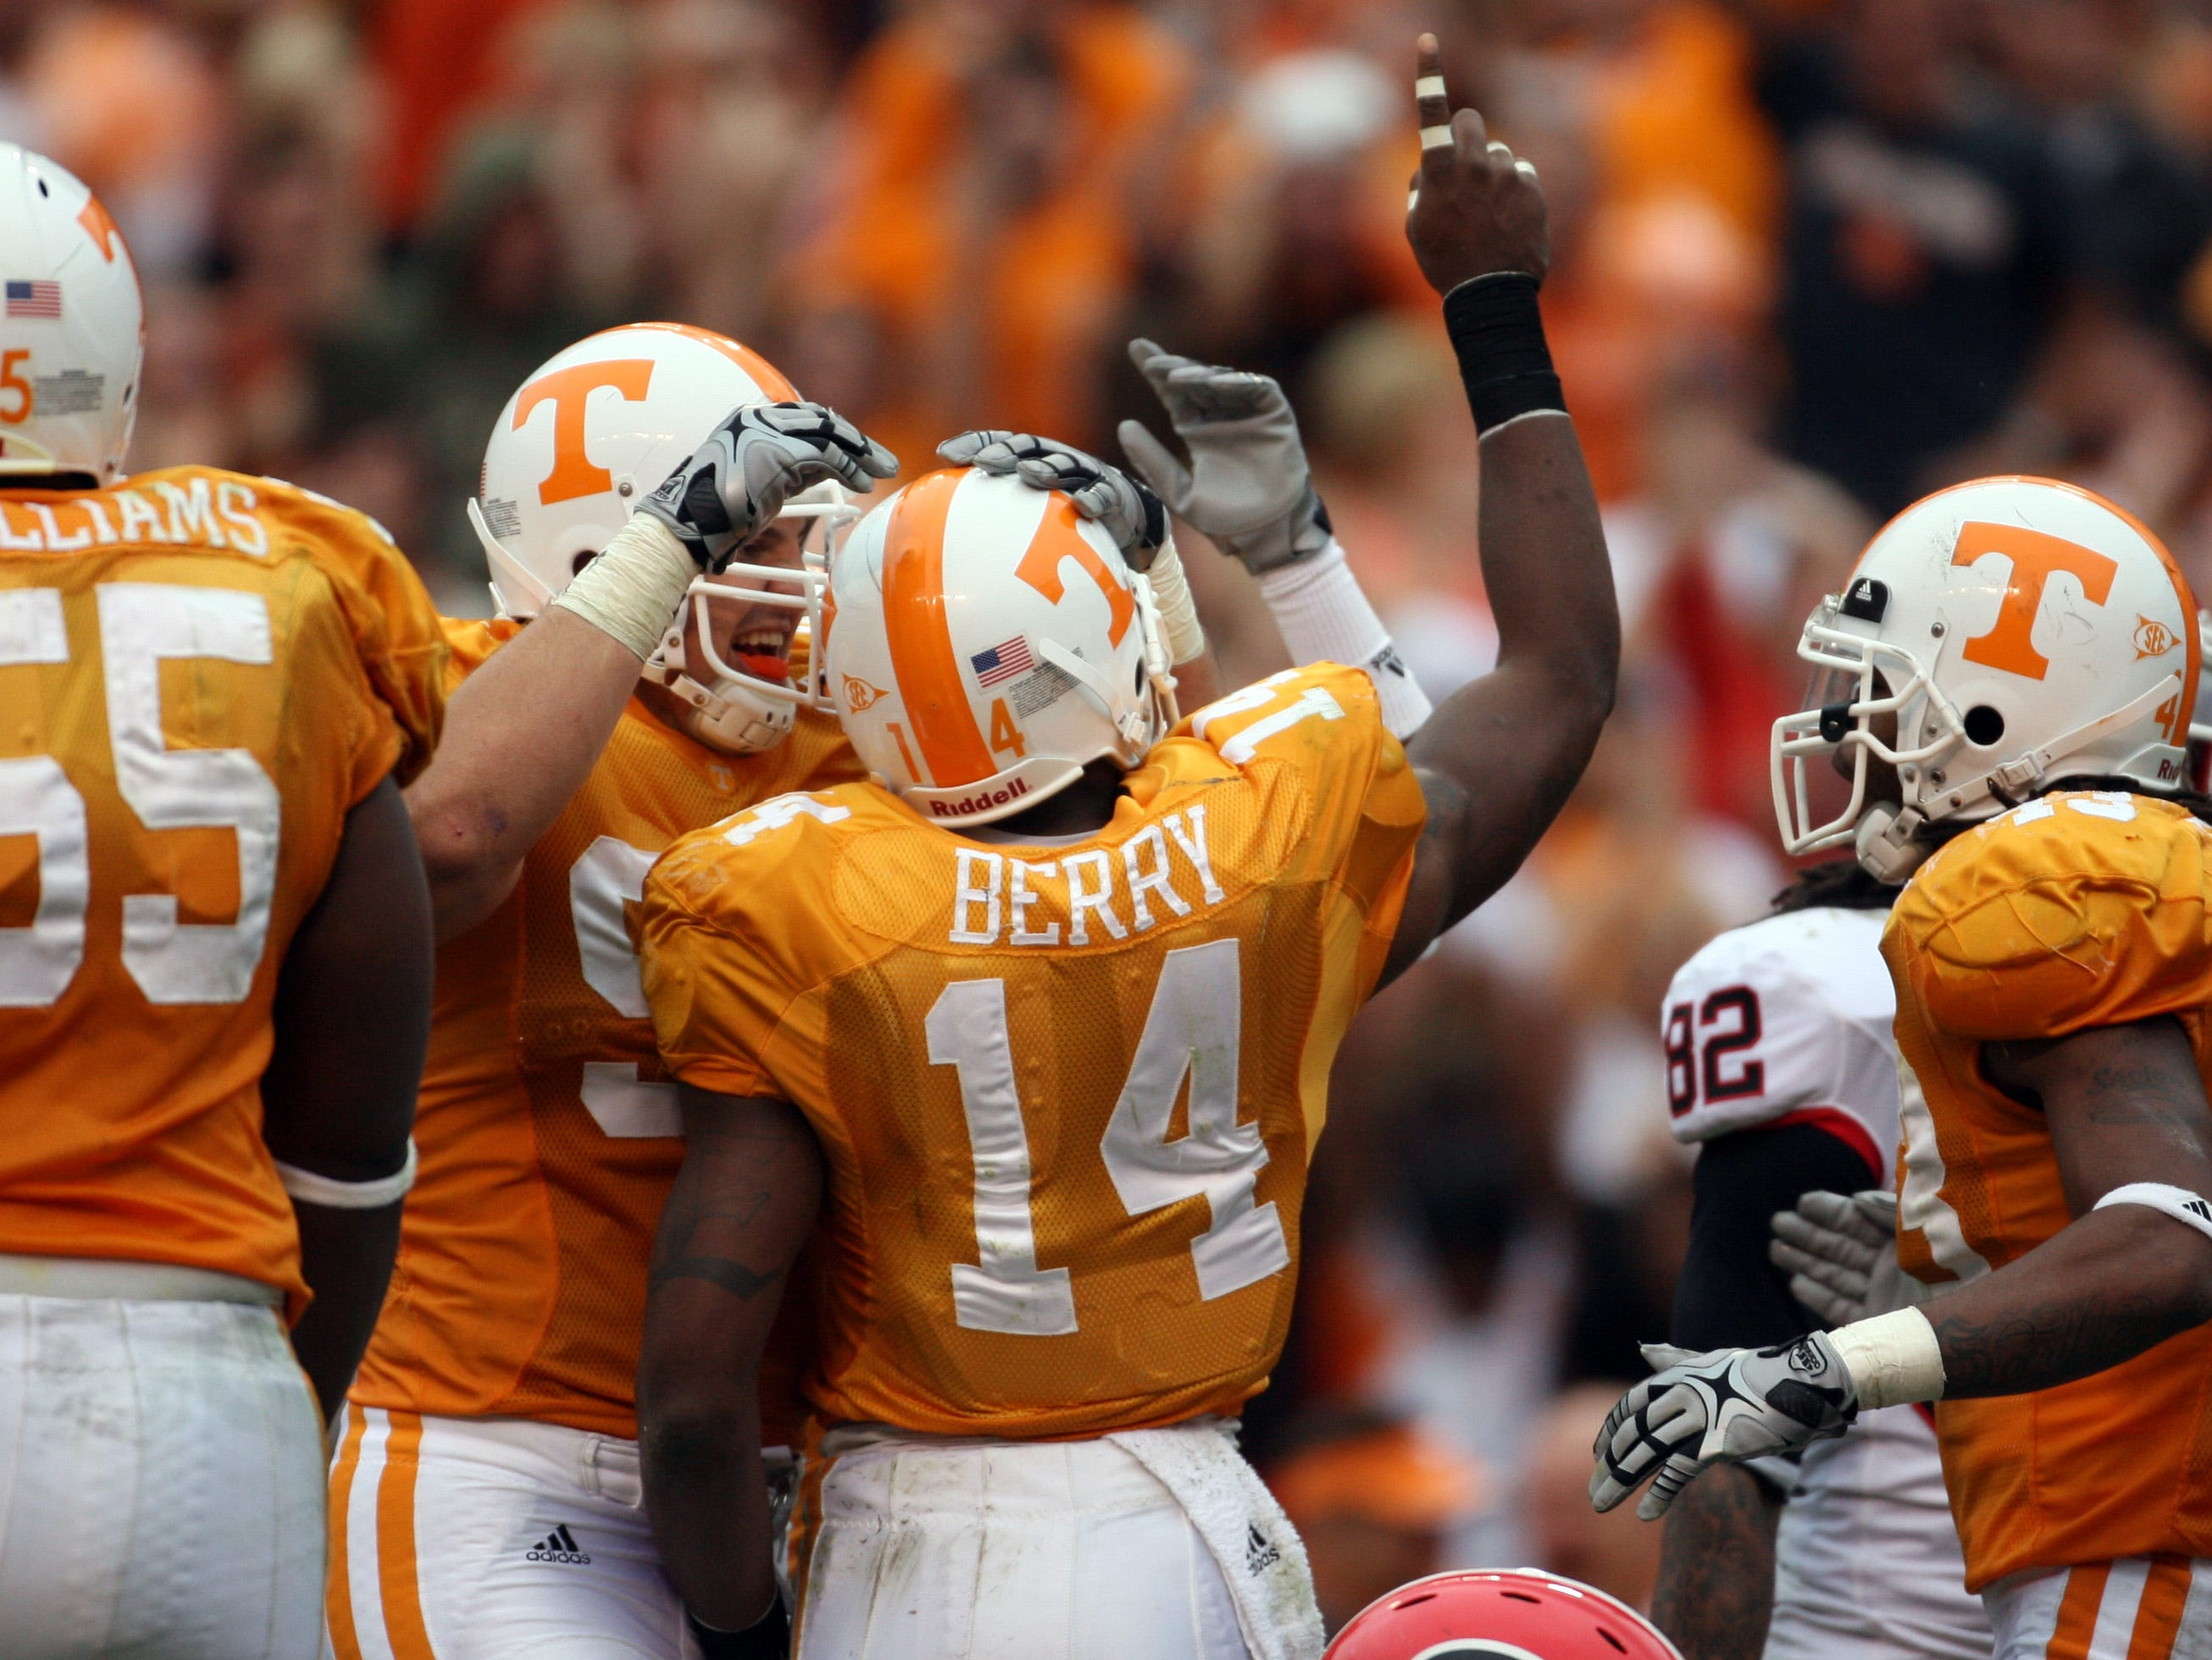 Tennessee cornerback Eric Berry (14) points to the sky after making an interception on Saturday, Oct. 10, 2009 at Neyland Stadium.